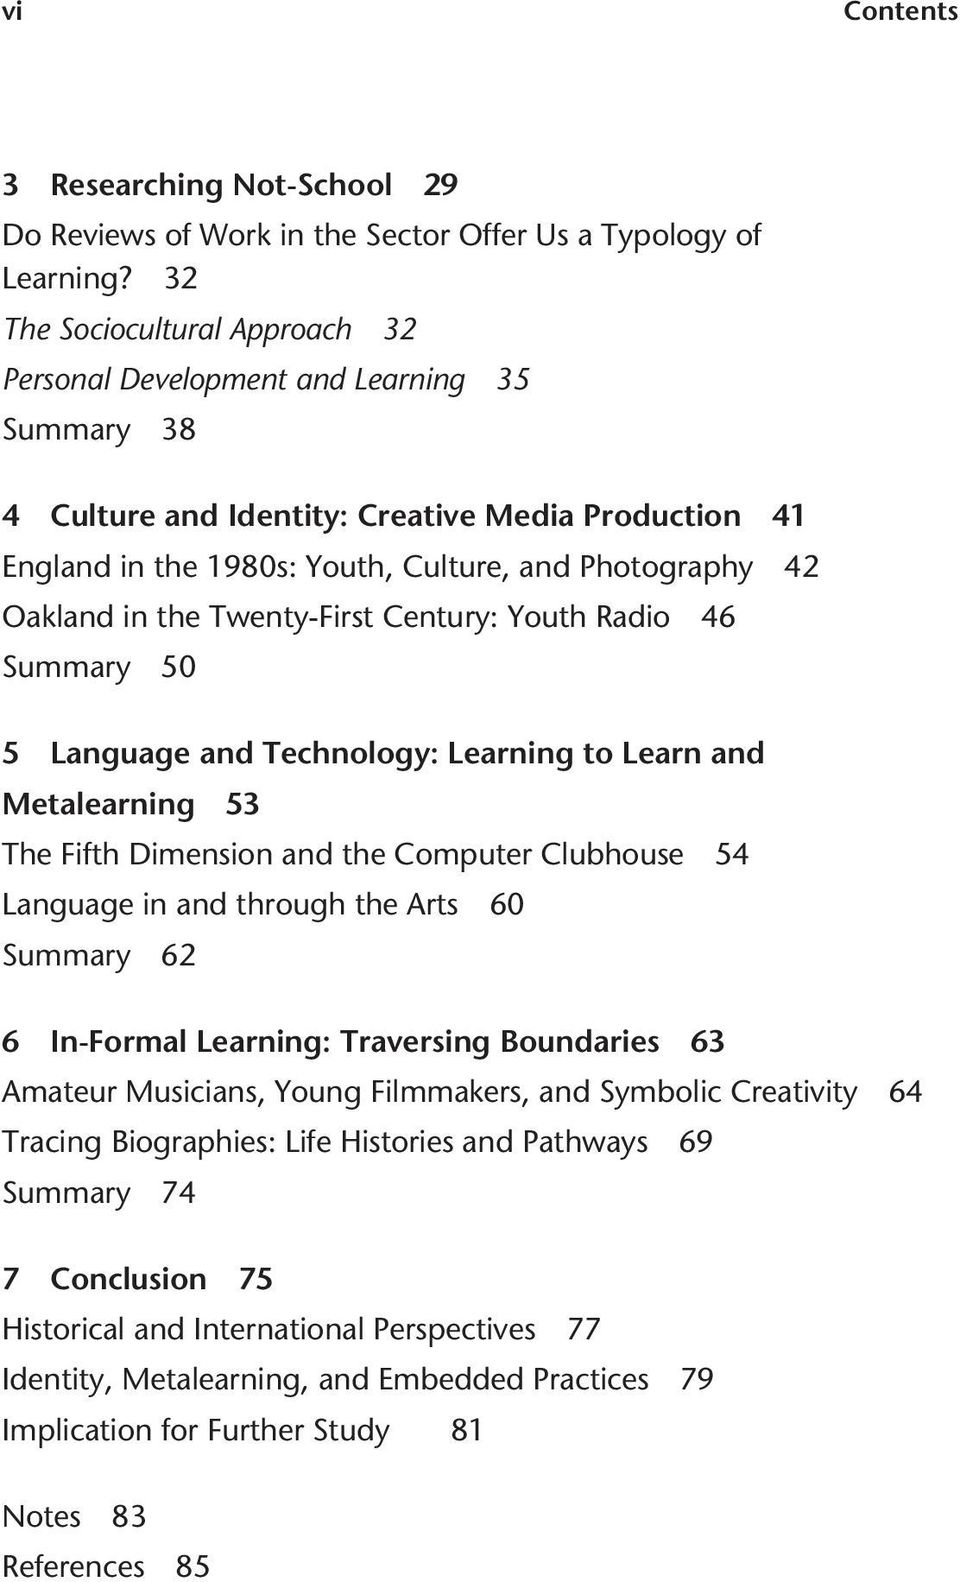 in the Twenty-First Century: Youth Radio 46 Summary 50 5 Language and Technology: Learning to Learn and Metalearning 53 The Fifth Dimension and the Computer Clubhouse 54 Language in and through the